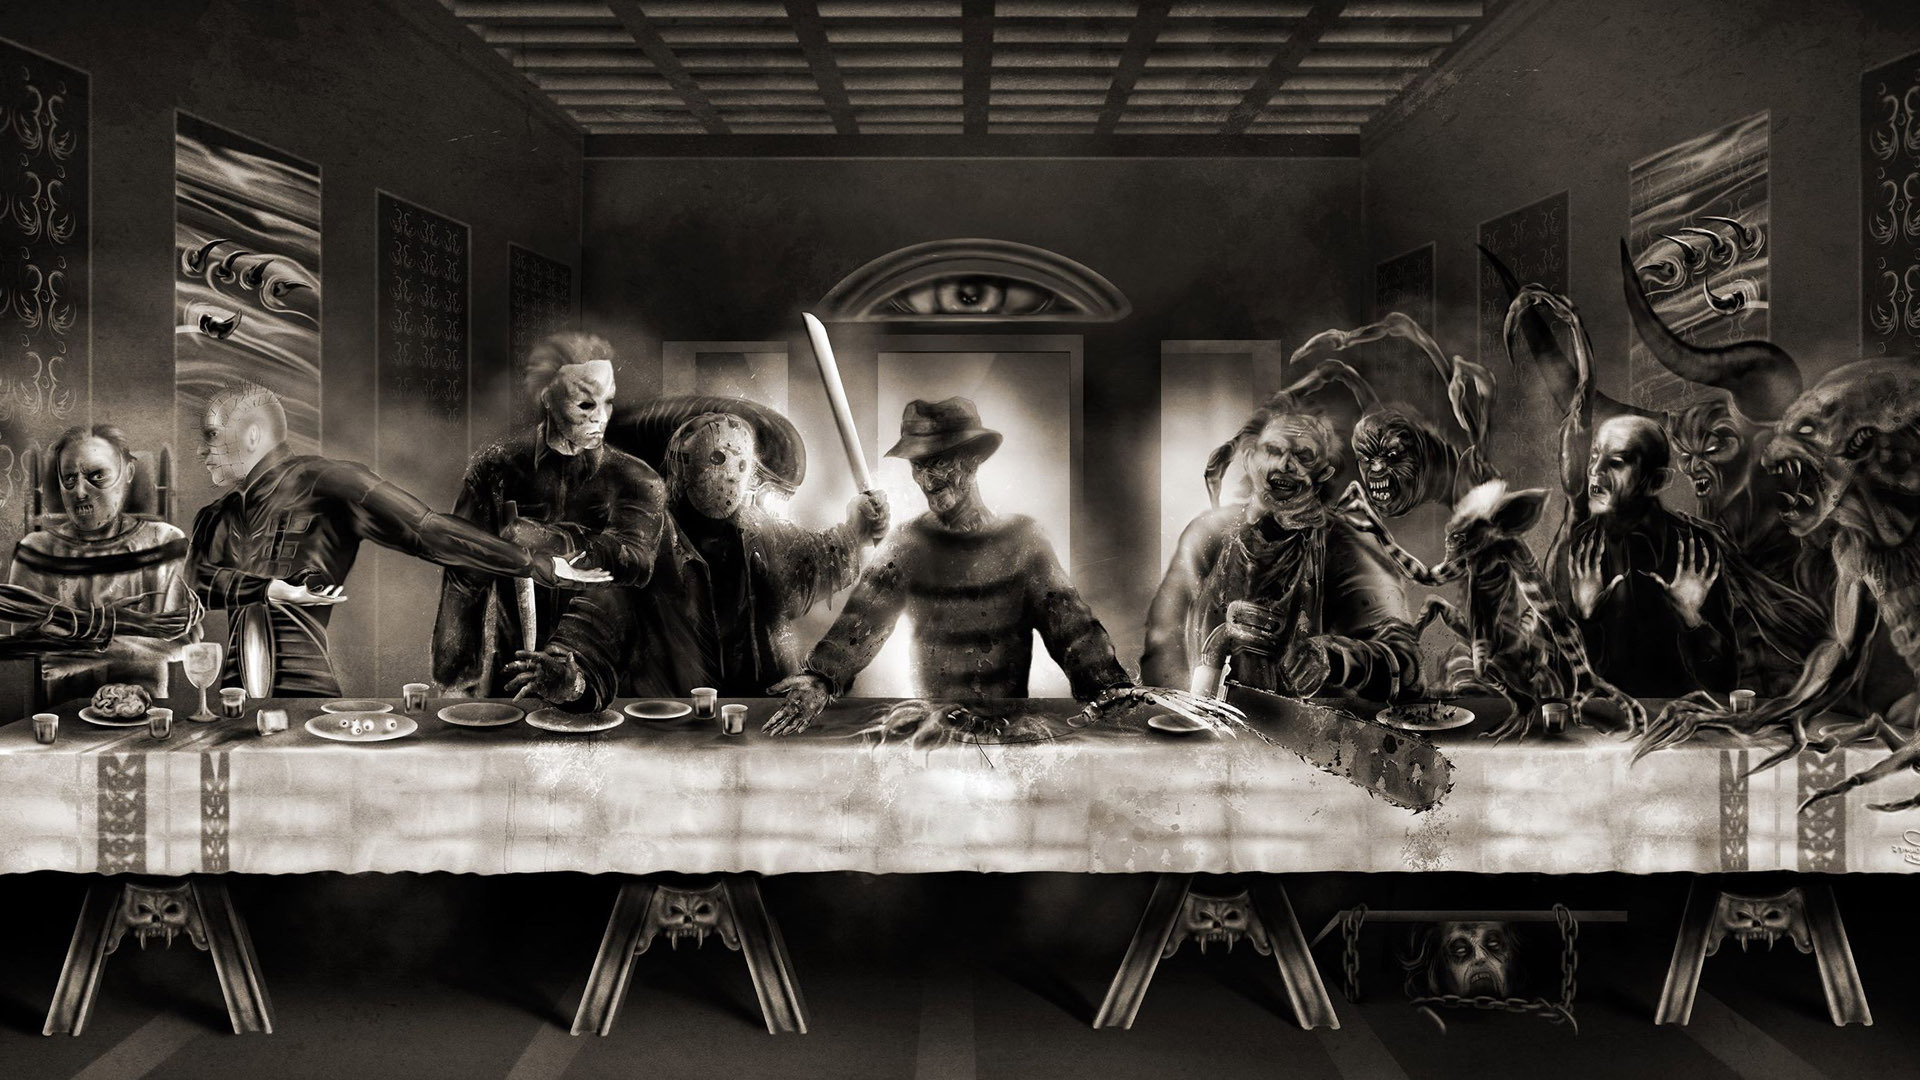 Horror Last Supper wallpaper 18864 1920x1080